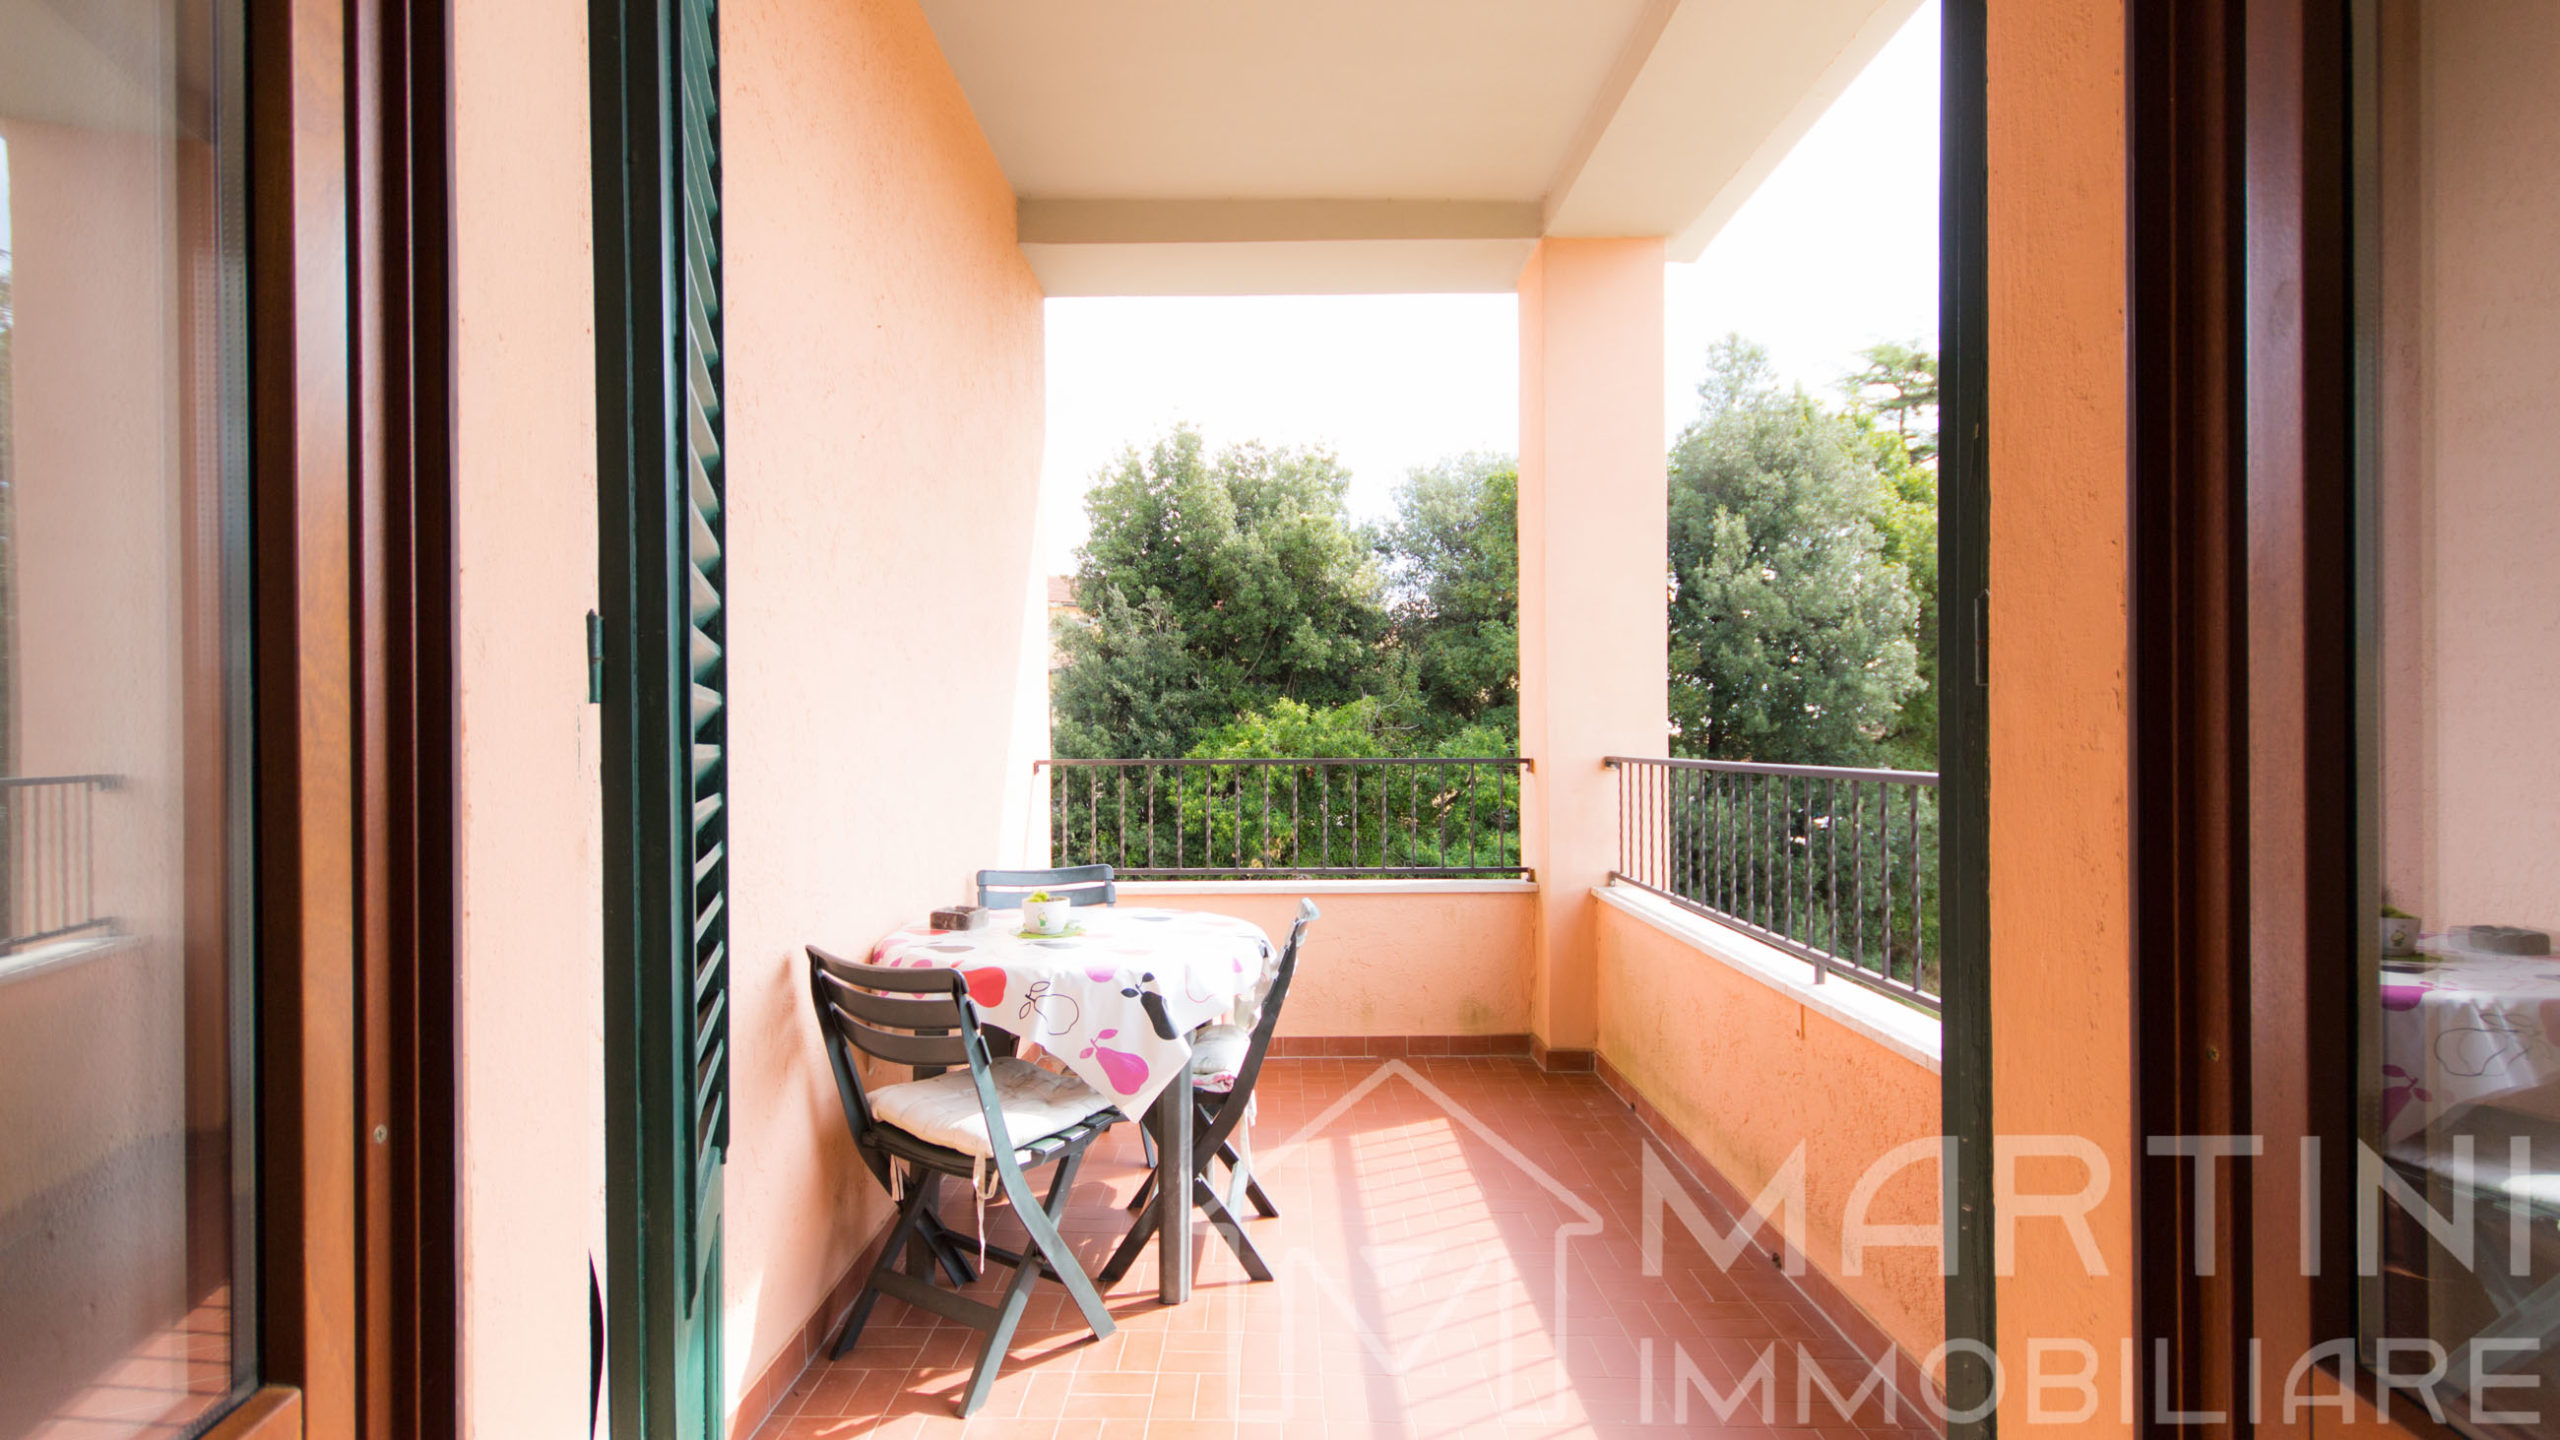 Renovated Apartment For Sale with Terrace and View